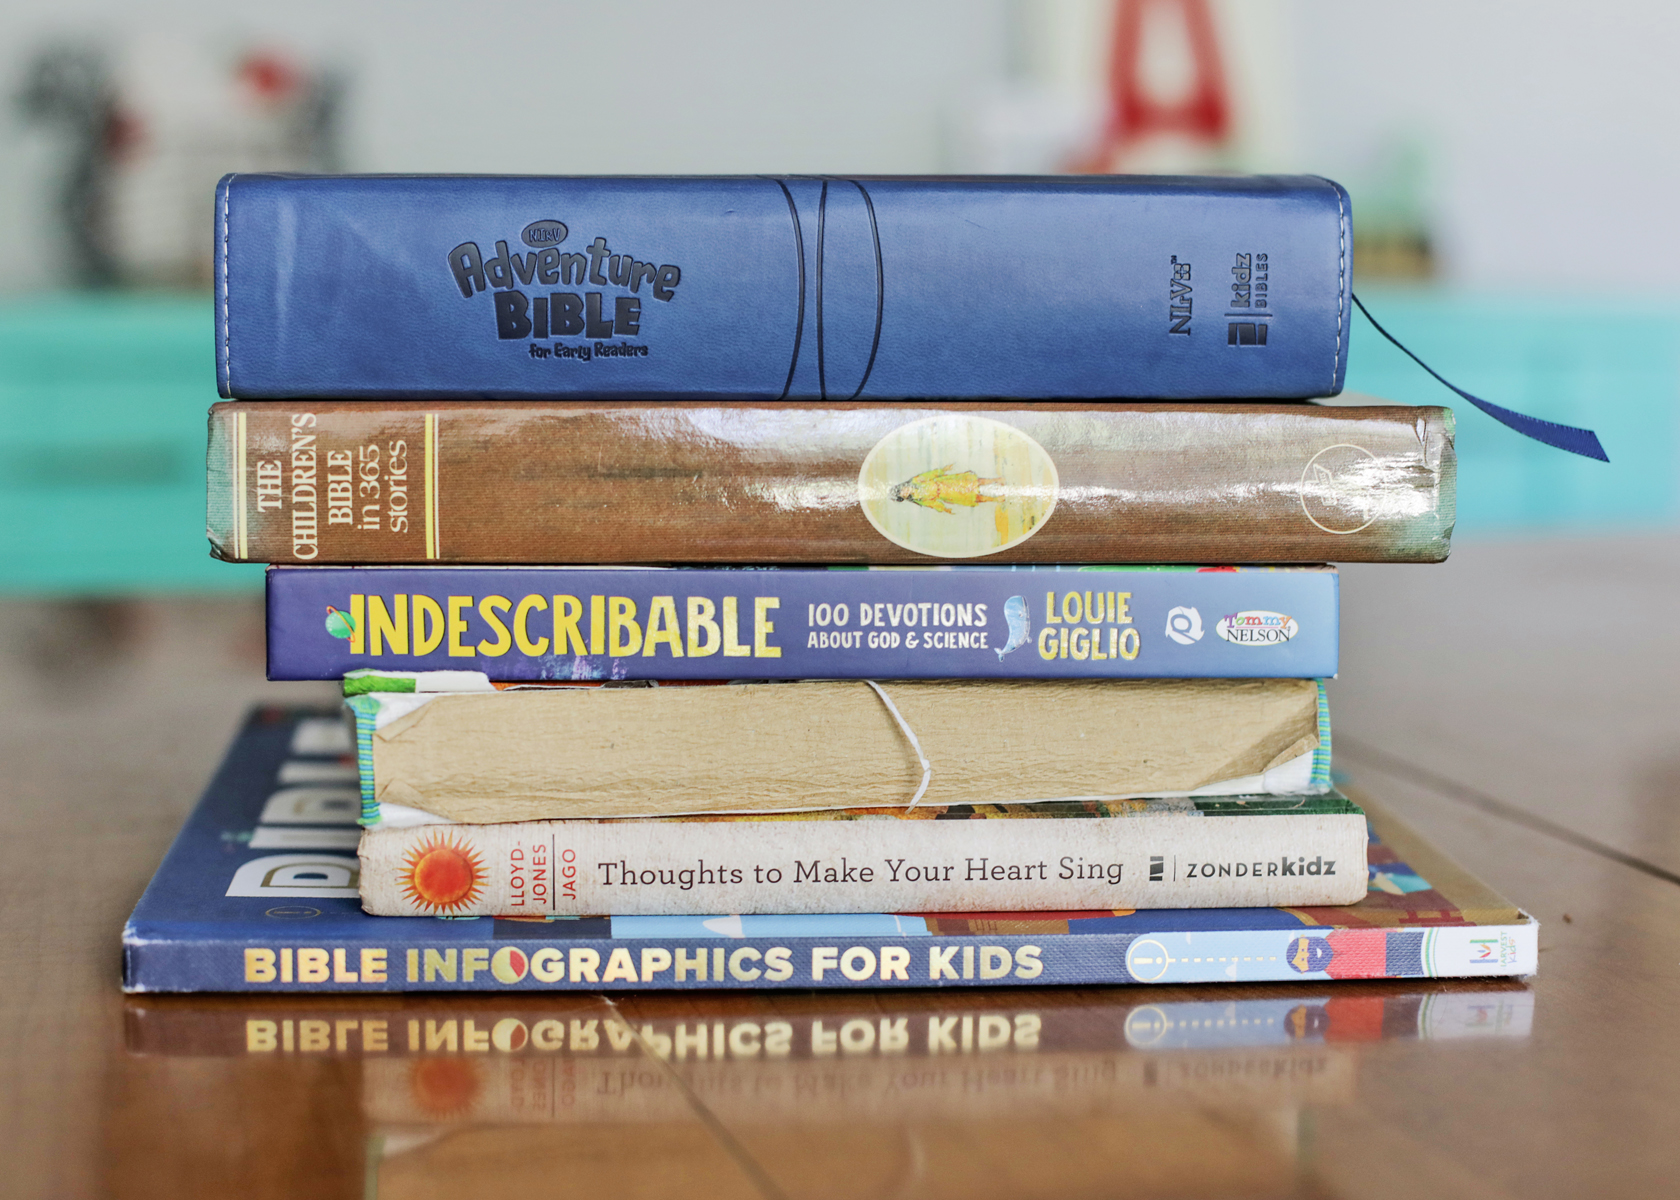 Favorite Bible Story Books for Kids